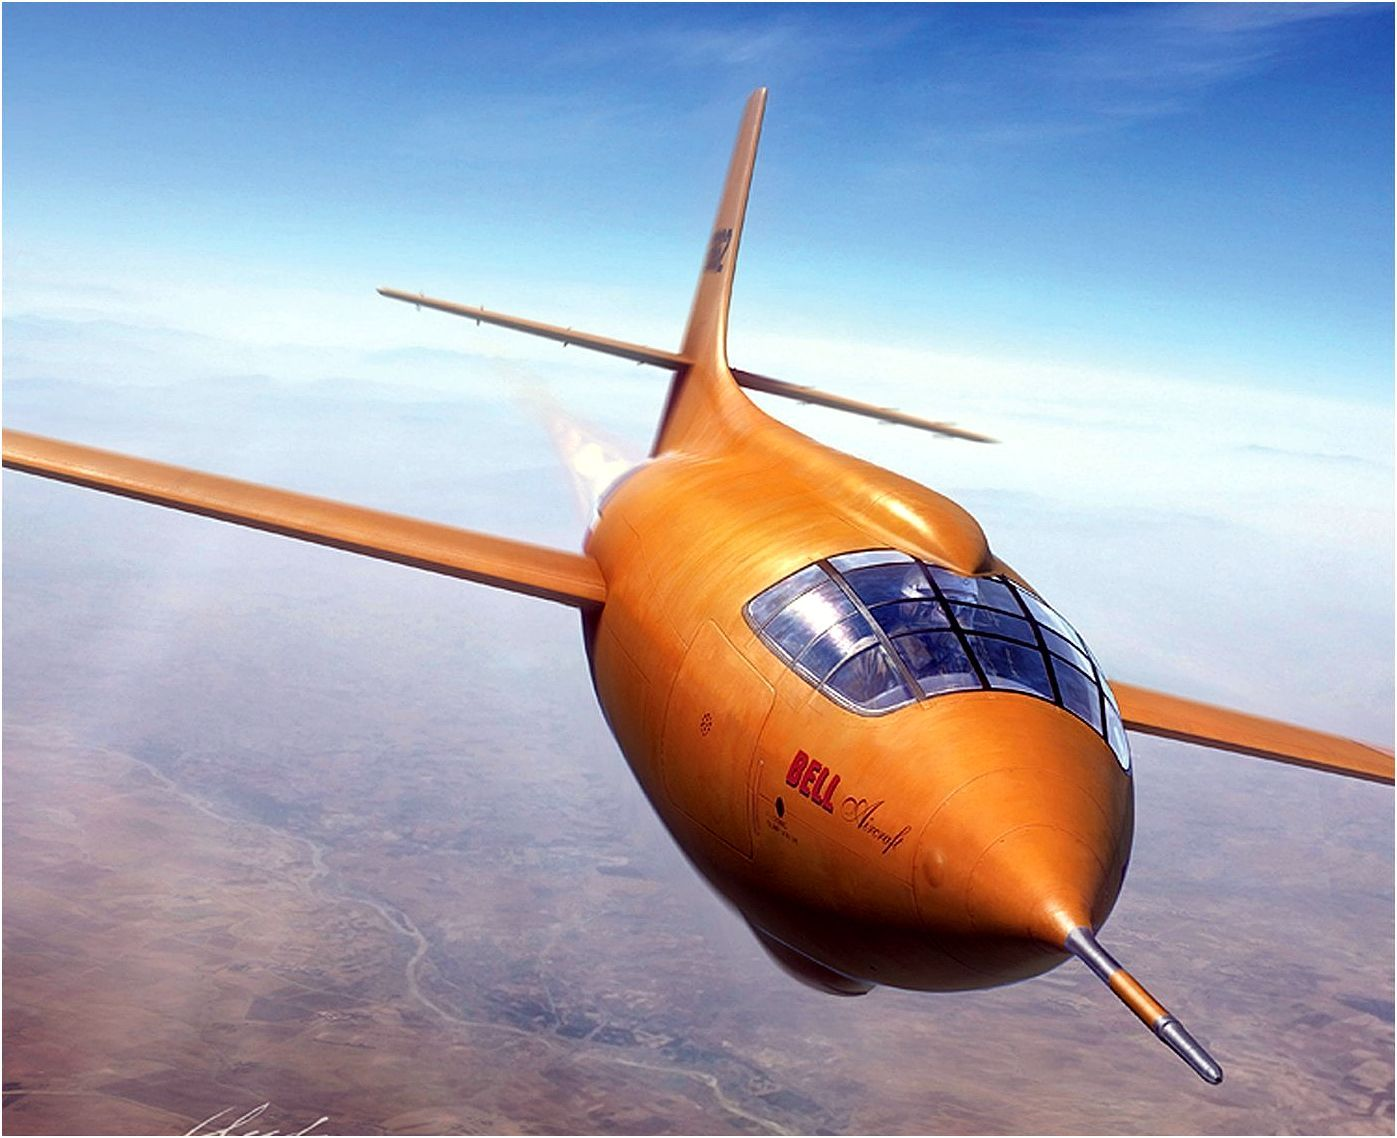 The Bell X-1 in all its glory.